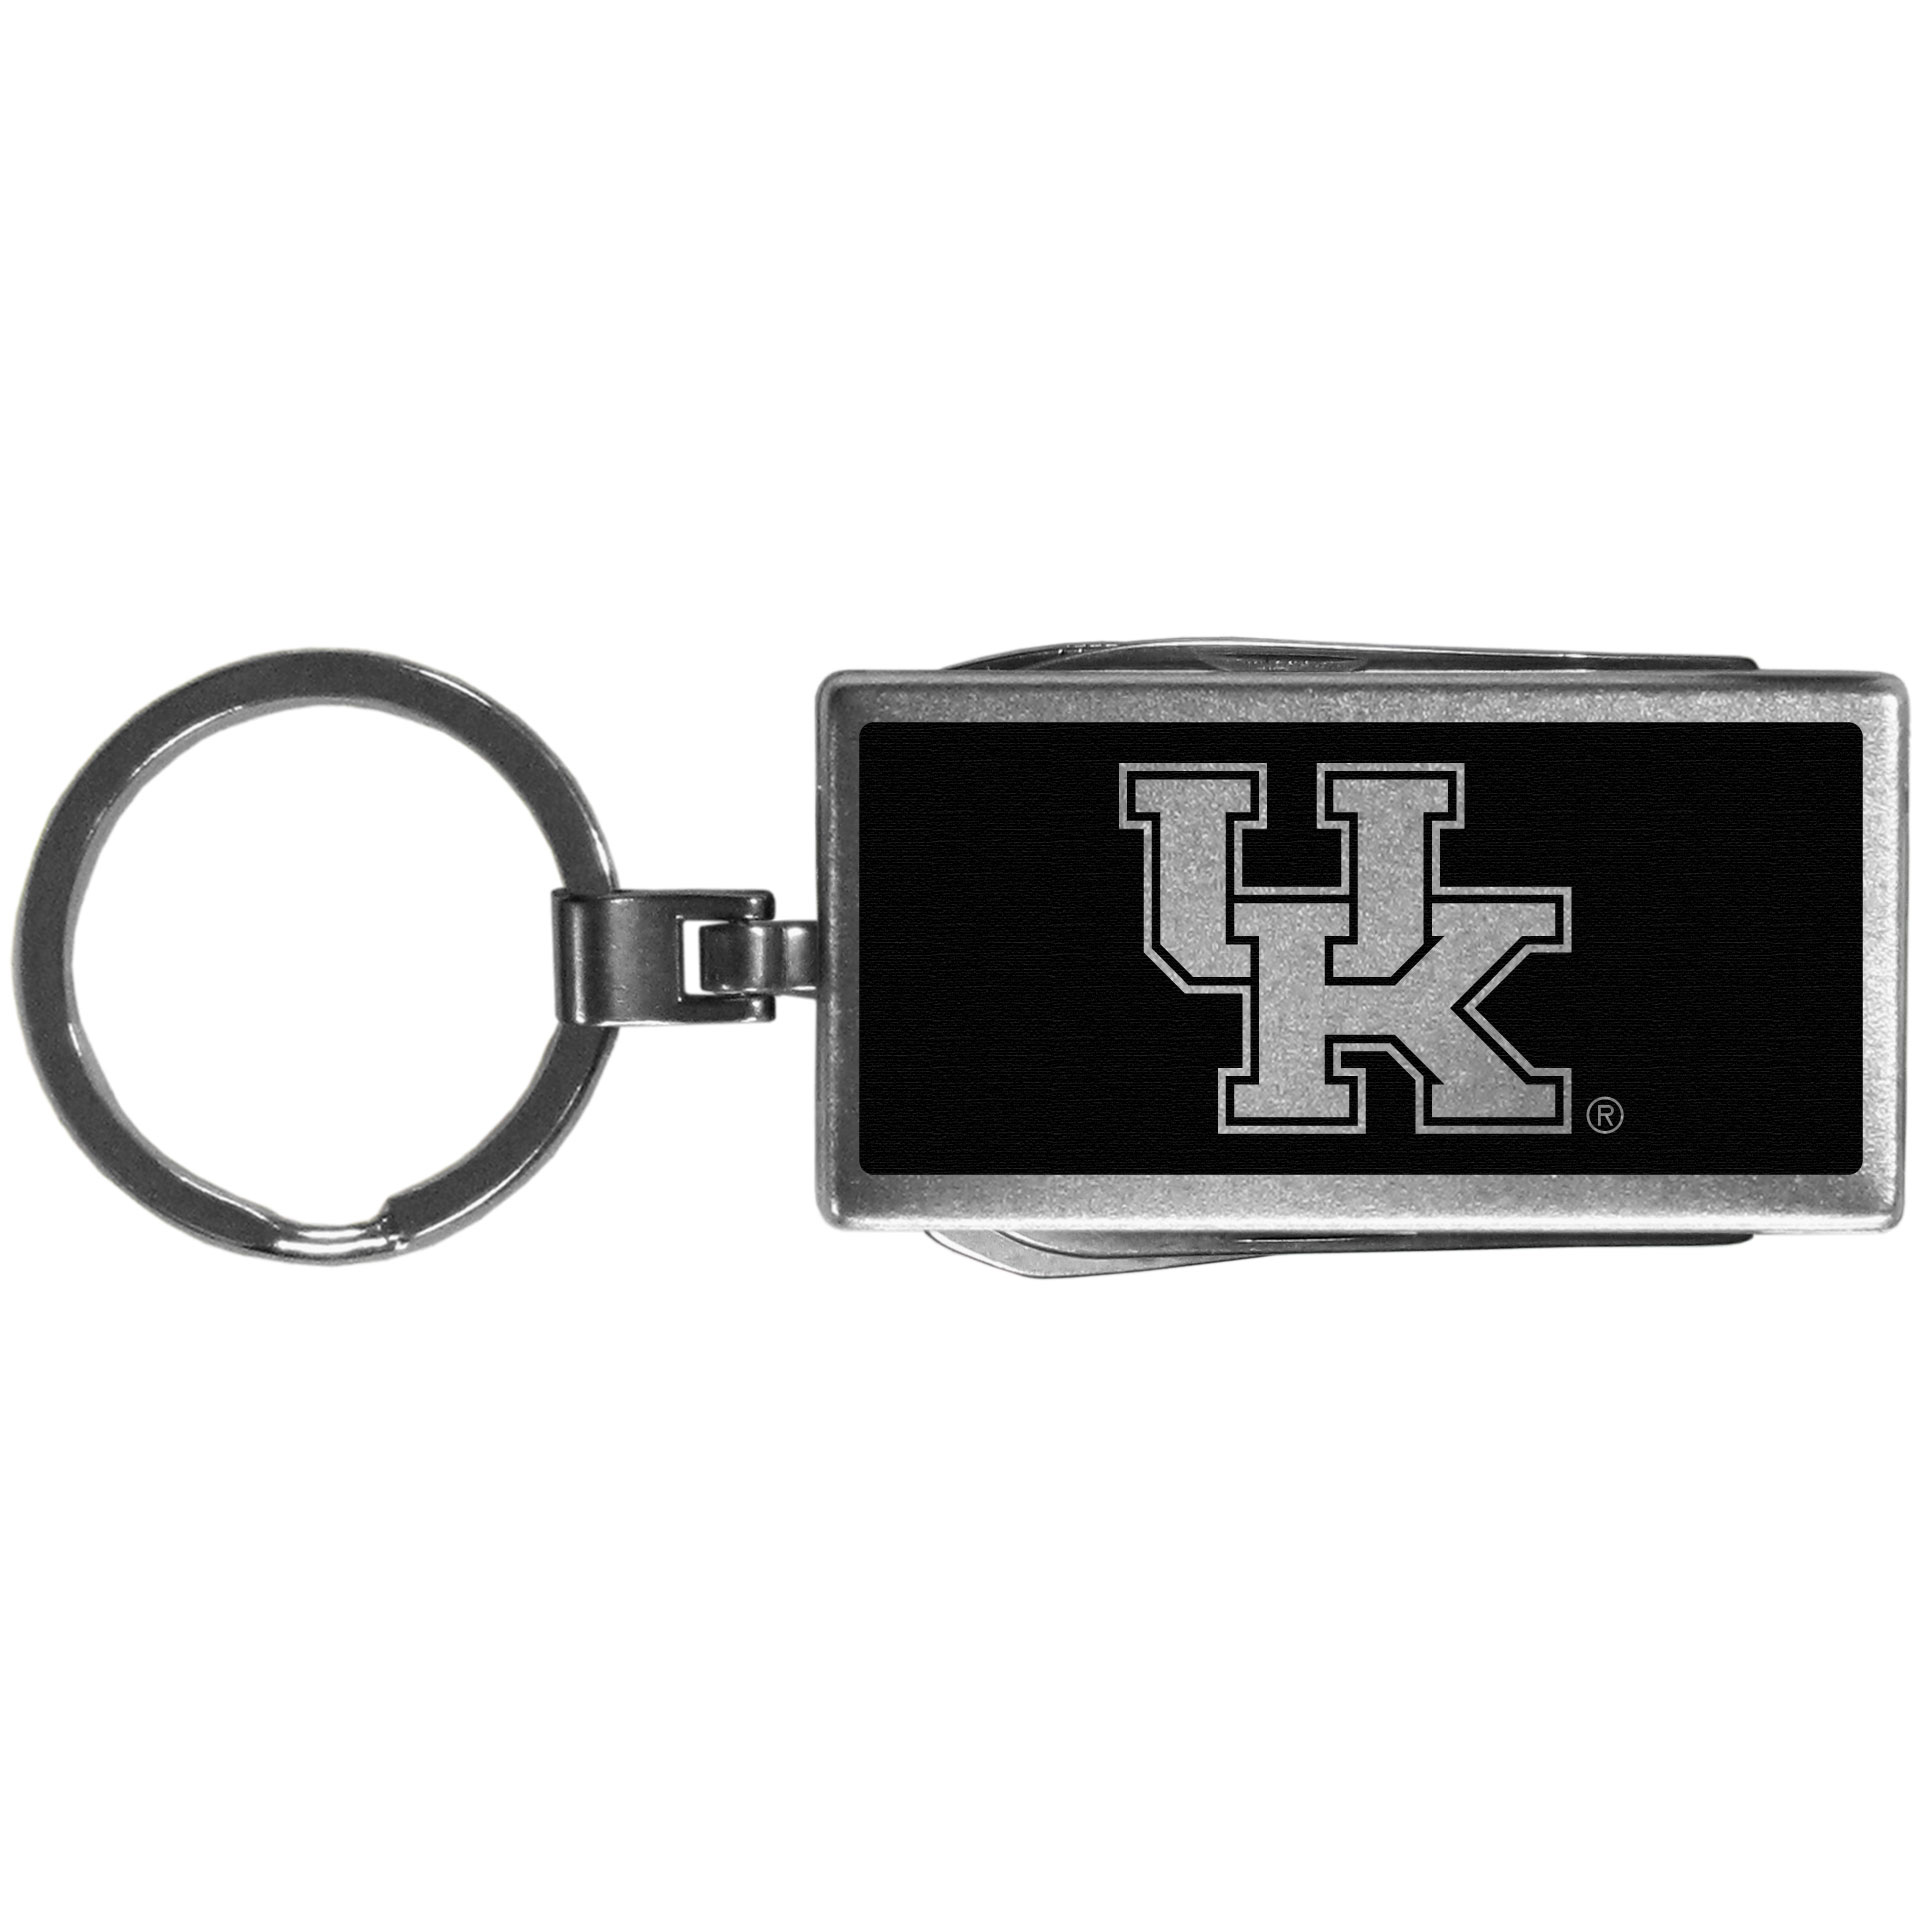 Kentucky Wildcats Multi-tool Key Chain, Black - Be the hero at the tailgate, camping, or on a Friday night with your Kentucky Wildcats Multi-Tool Keychain which comes complete with bottle opener, scissors, knife, nail file and screw driver. Be it opening a package or a beverage Siskiyou's Multi-Tool Keychain goes wherever your keys do. The keychain hangs at 4 inches long when closed.